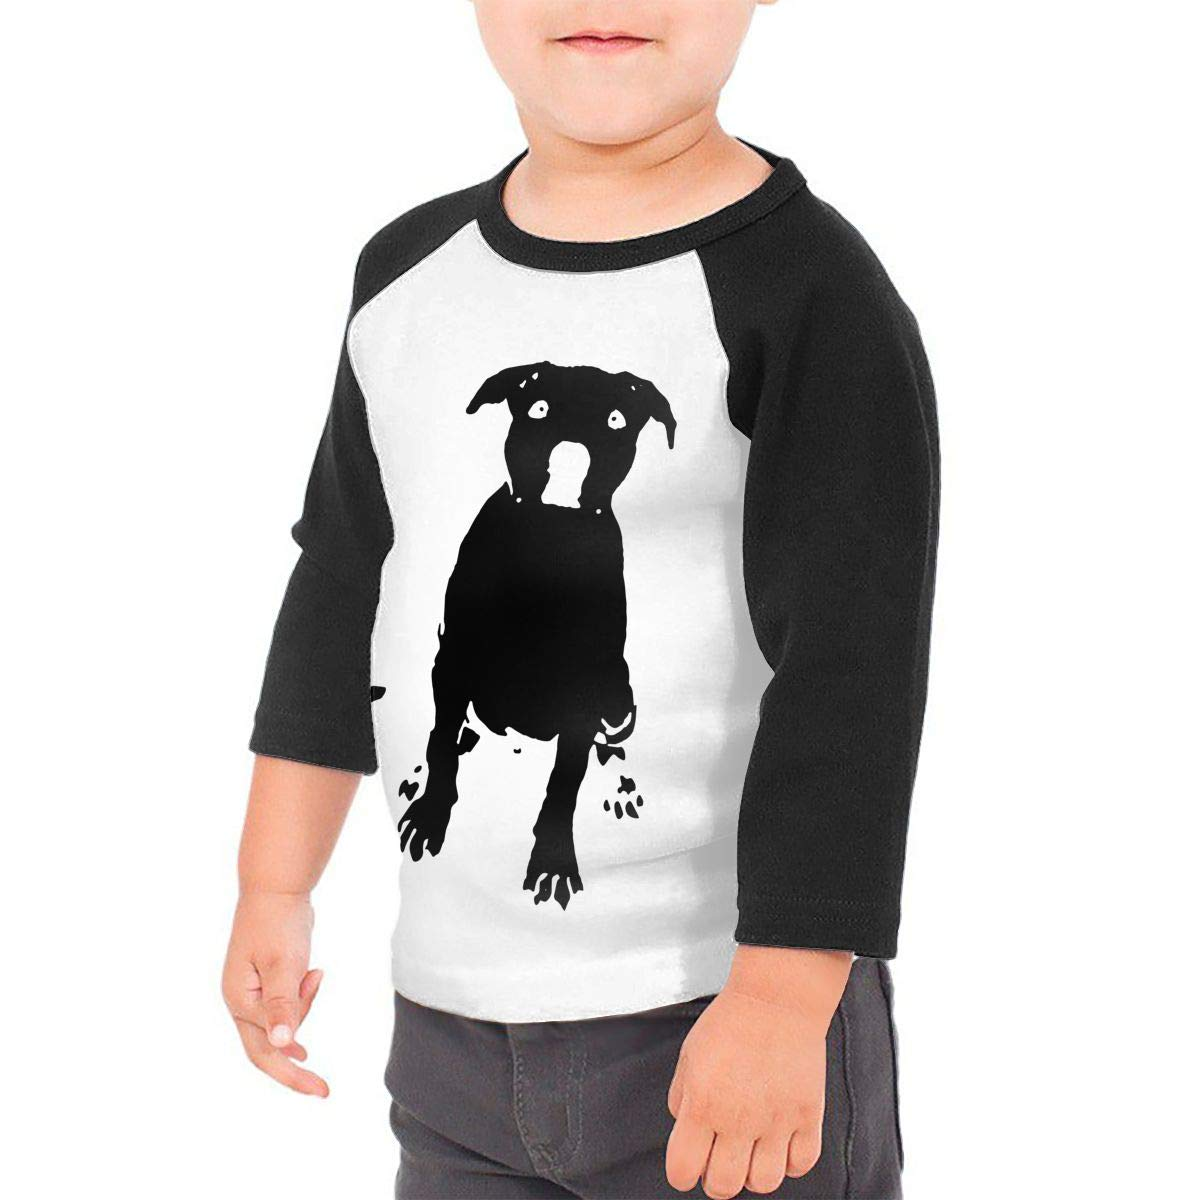 Pitbull Dog Silhouette Unisex 100/% Cotton Childrens 3//4 Sleeves T-Shirt Top Tees 2T~5//6T